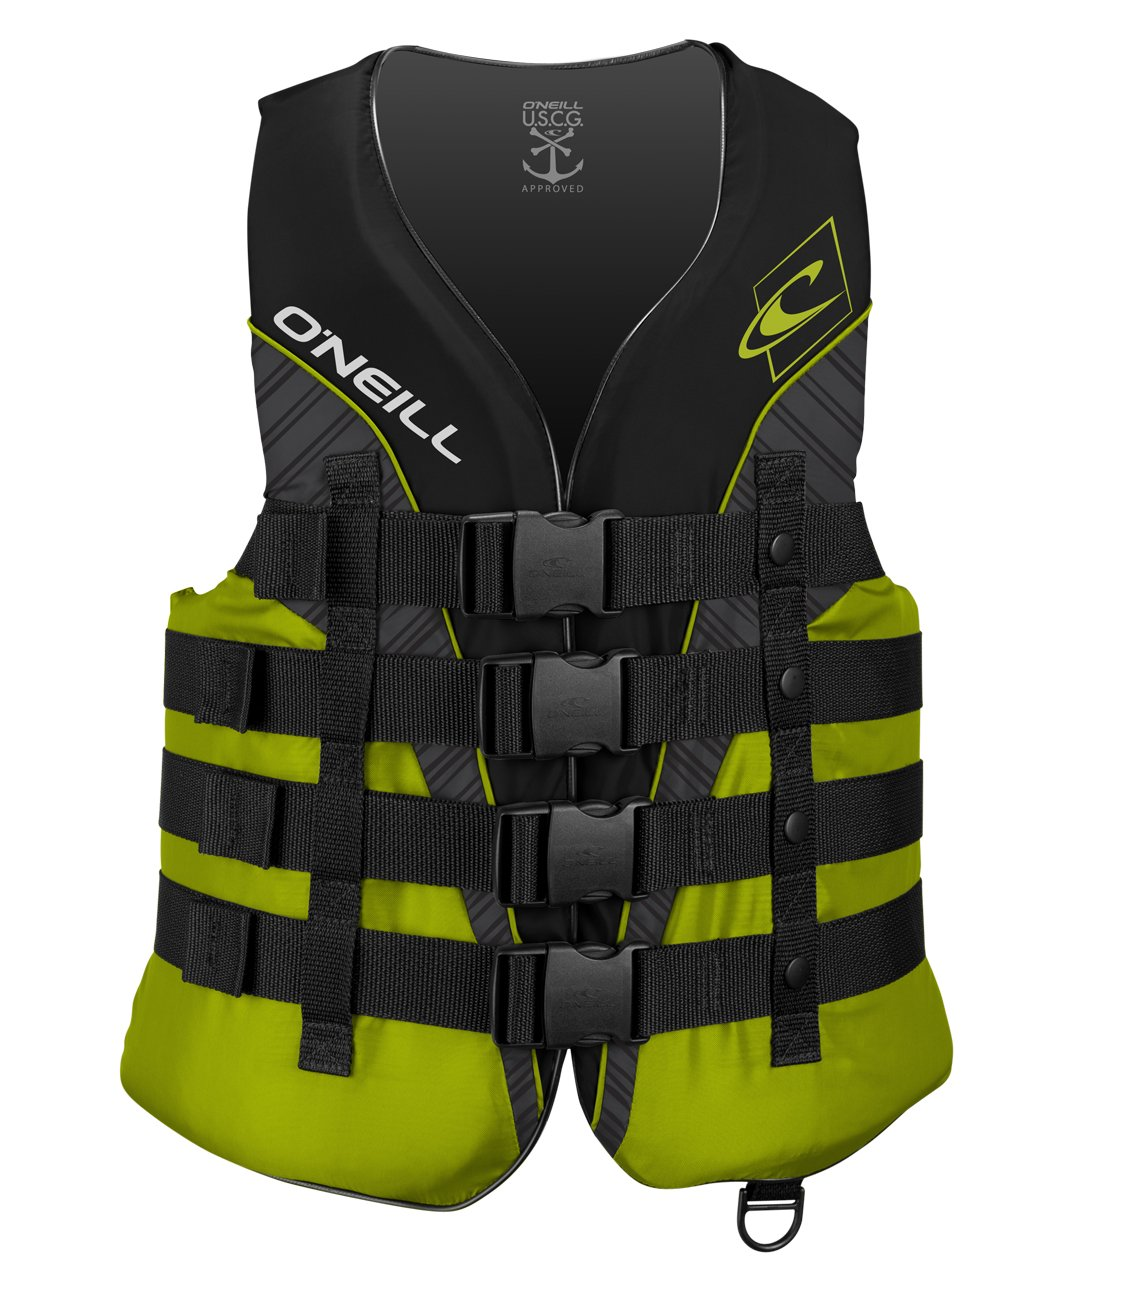 O'Neill Wetsuits Men's Superlite USCG Life Vest by O'Neill Wetsuits